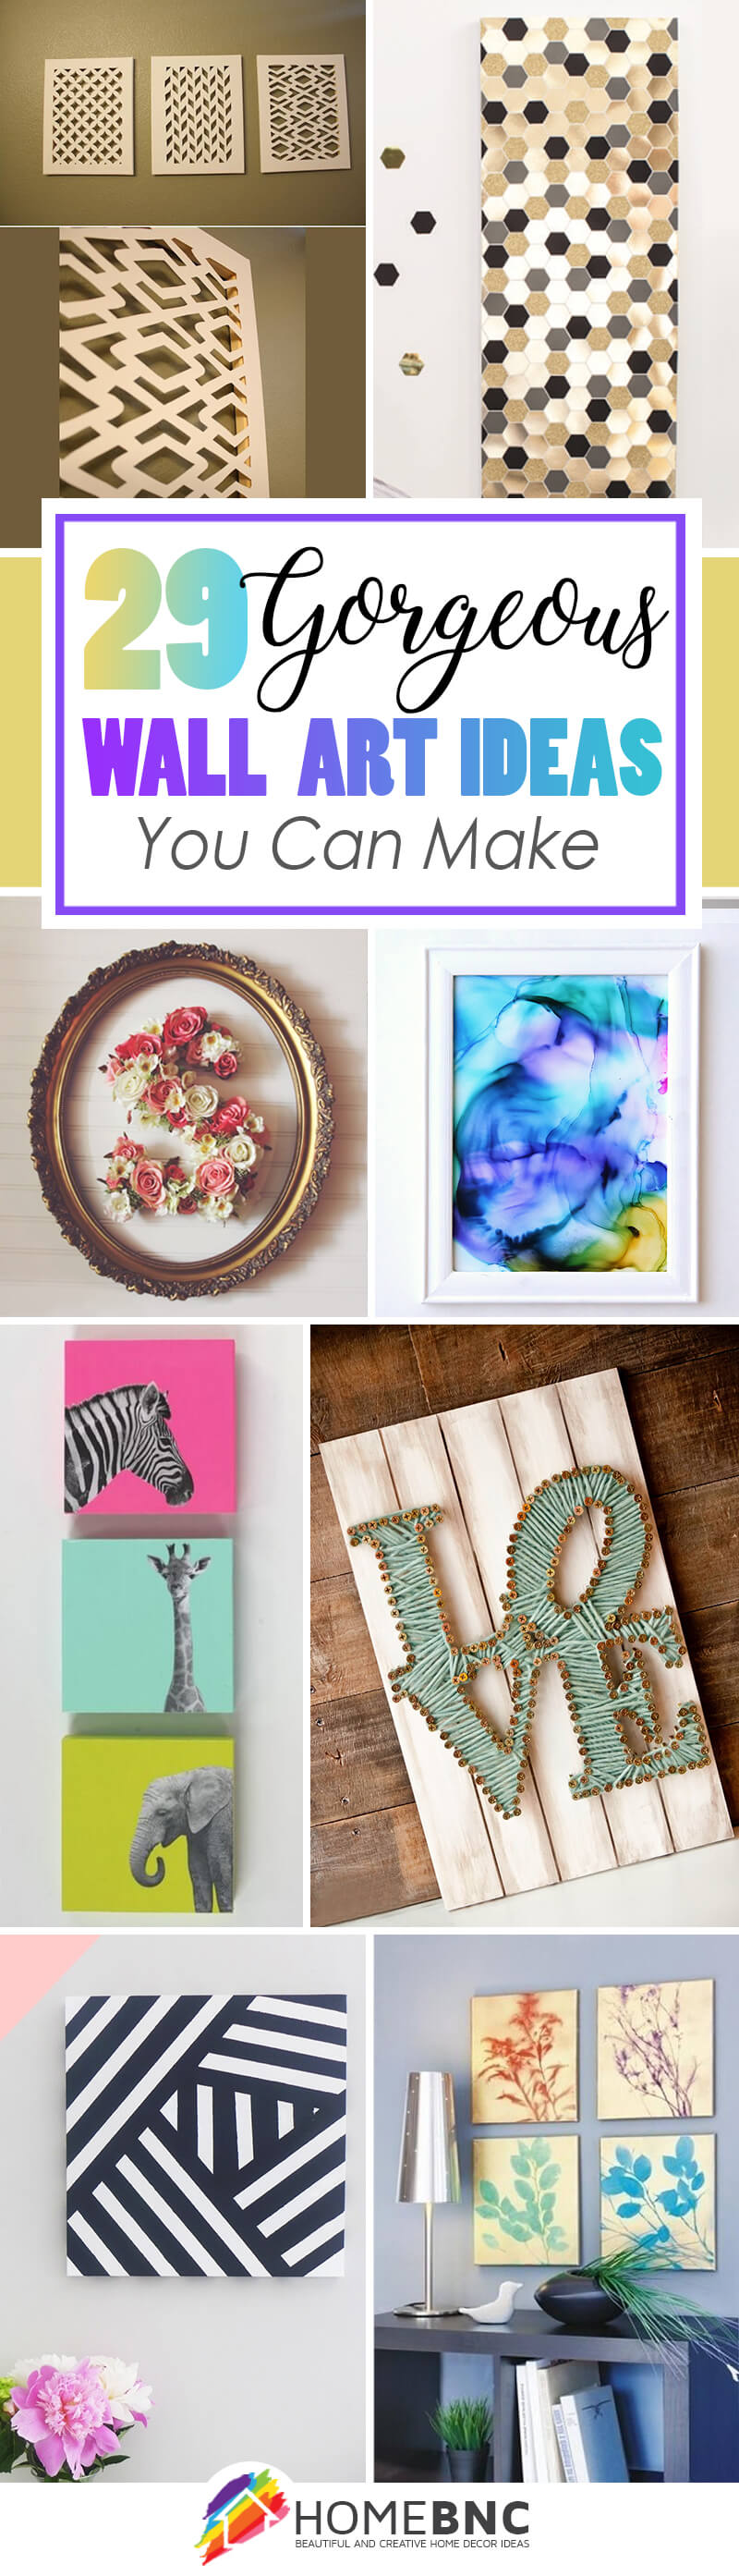 36 Best Diy Wall Art Ideas Designs And Decorations For 2021